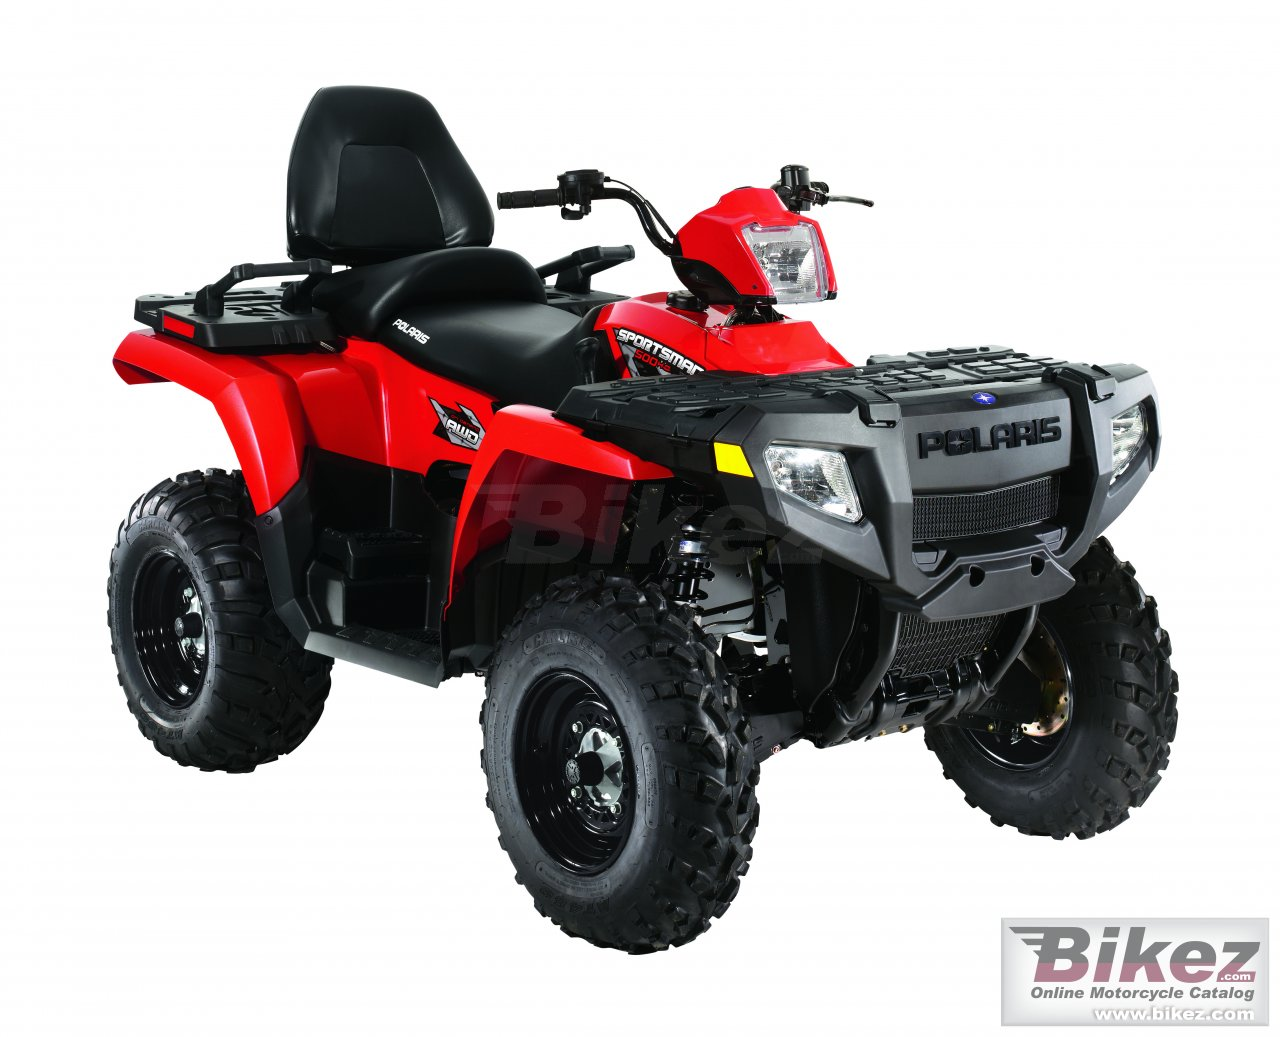 Polaris sportsman 500 ho touring